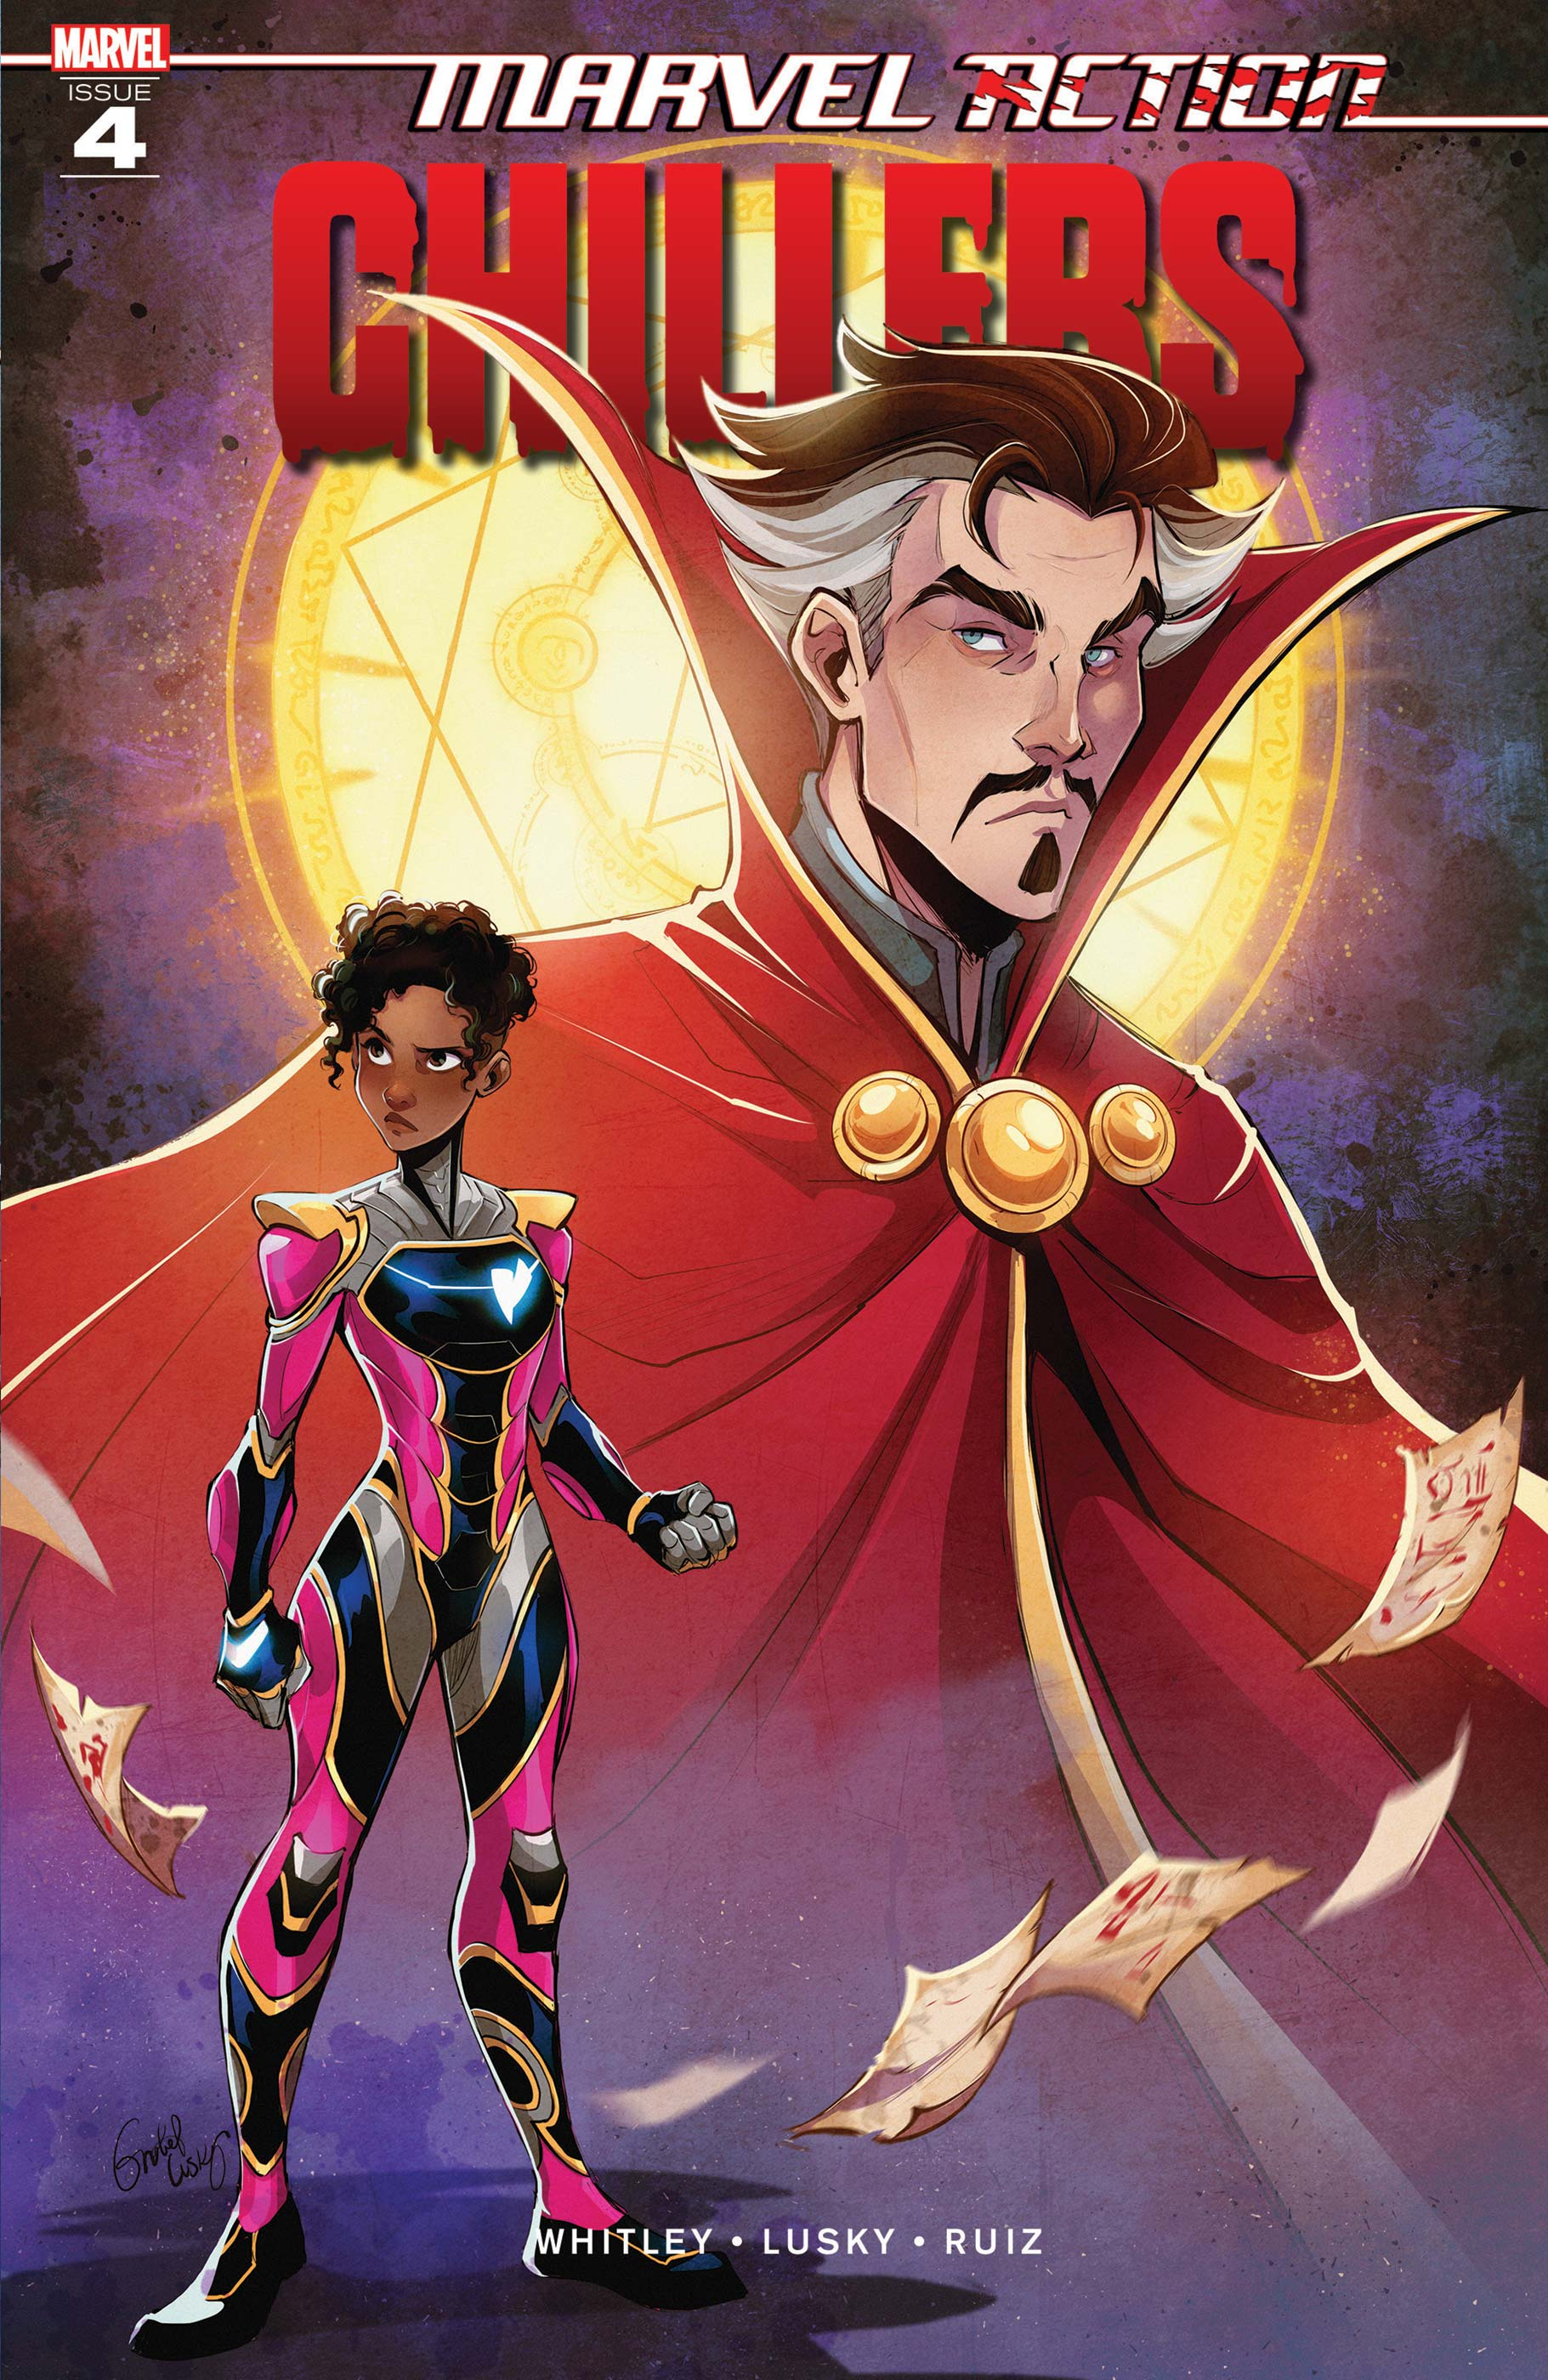 Marvel Action Chillers (2020) #4